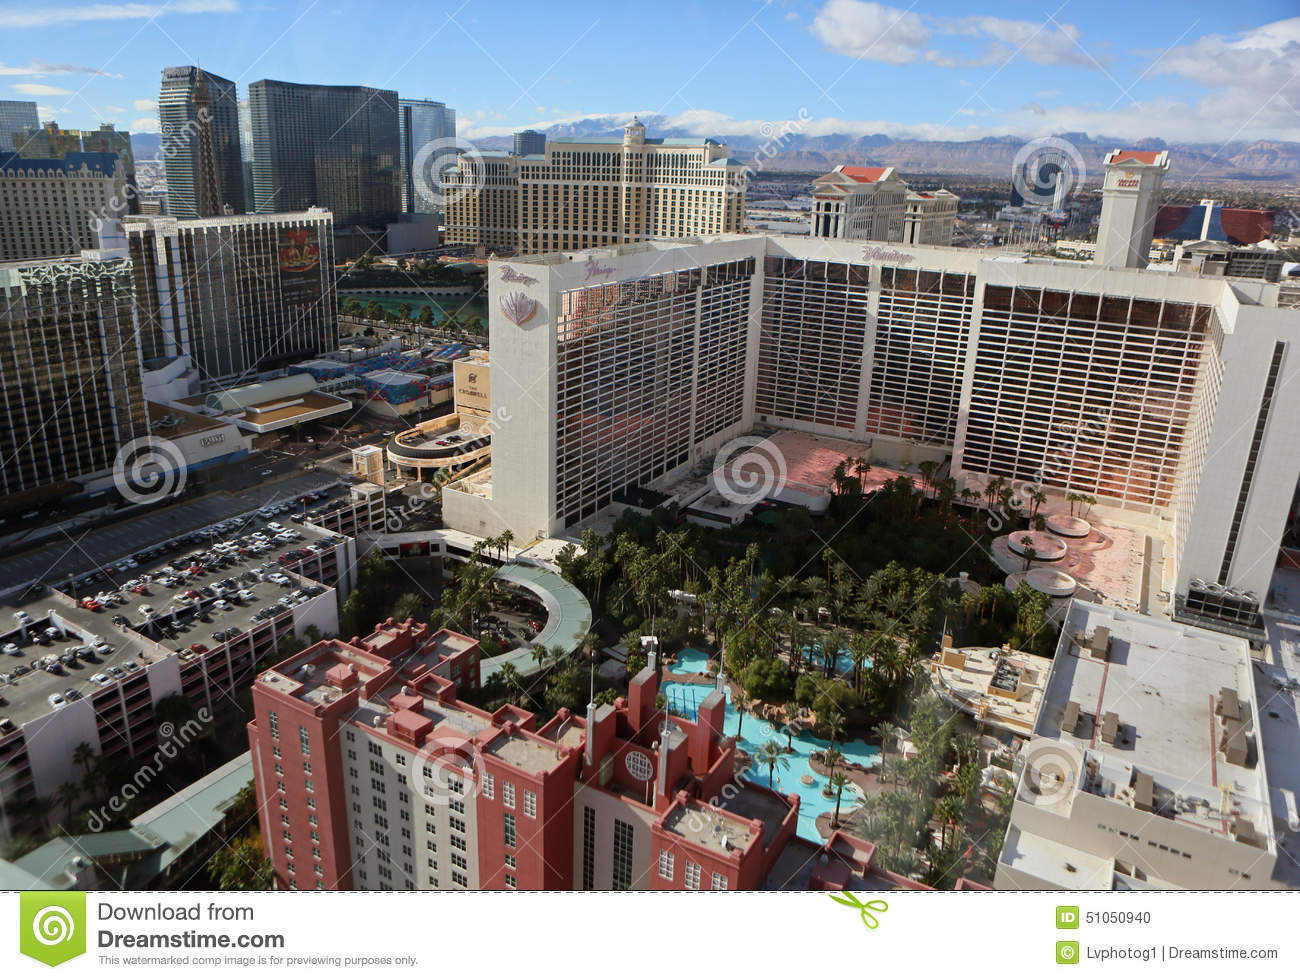 Does Aerial view las vegas strip